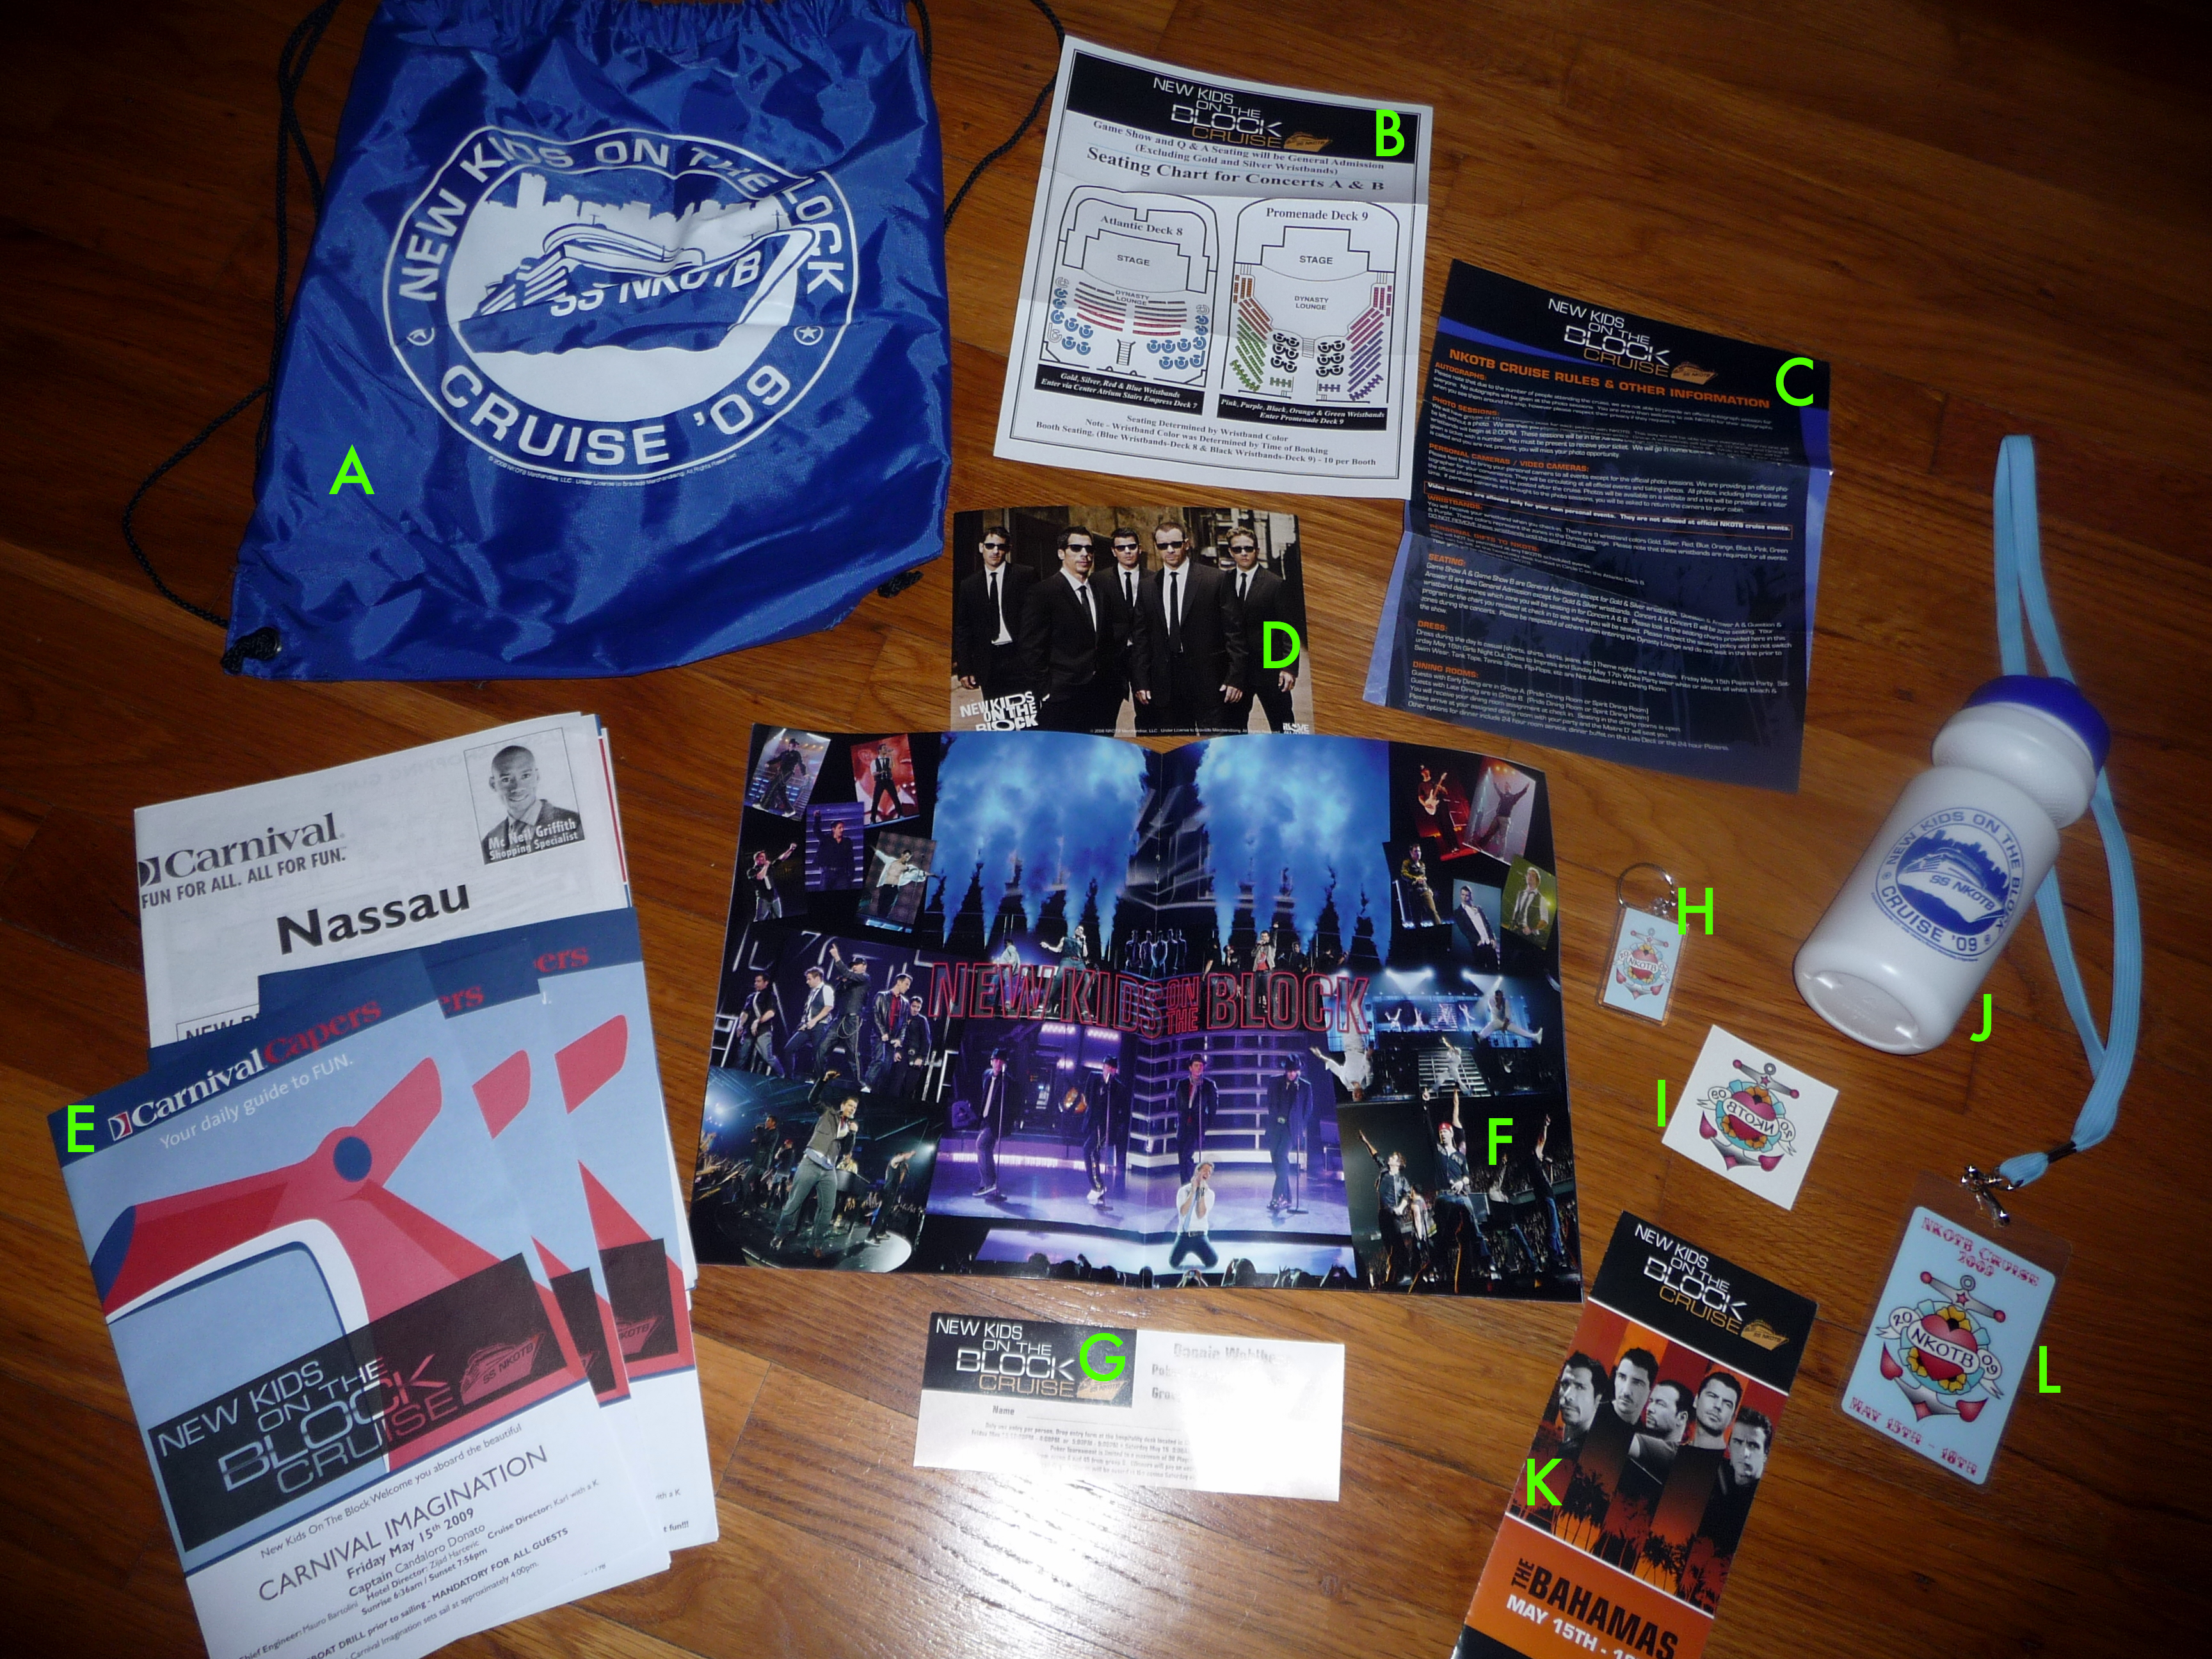 ... the 2009 cruise I completely forgot about the promised goody bag we were to receive until I made it to my cabin and saw it waiting for me on my bed. & nKoTb Summer Cruise 2012: Contestants not appearing on stage will ...